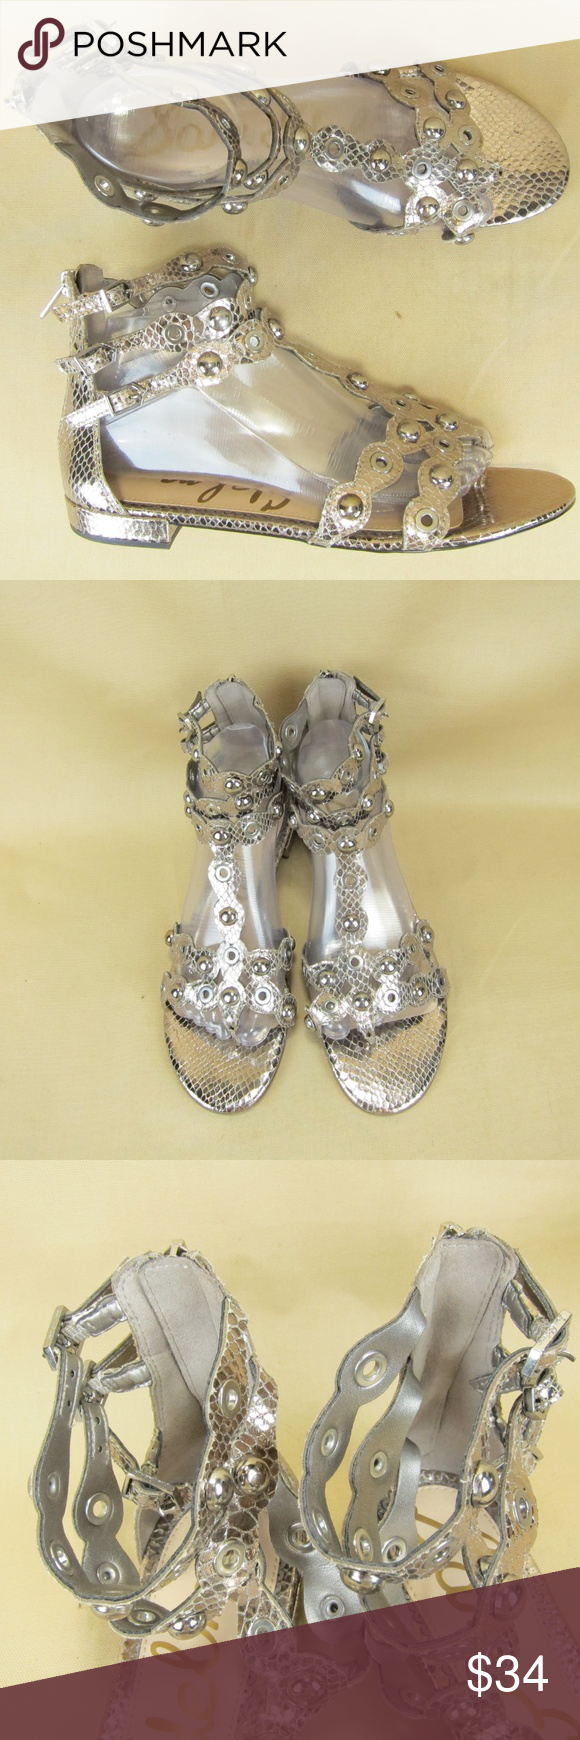 e7b56fab73d0 Sam Edelman Desi Gladiator Sandal Ankle Strap US 9 You are purchasing a  pair of Sam